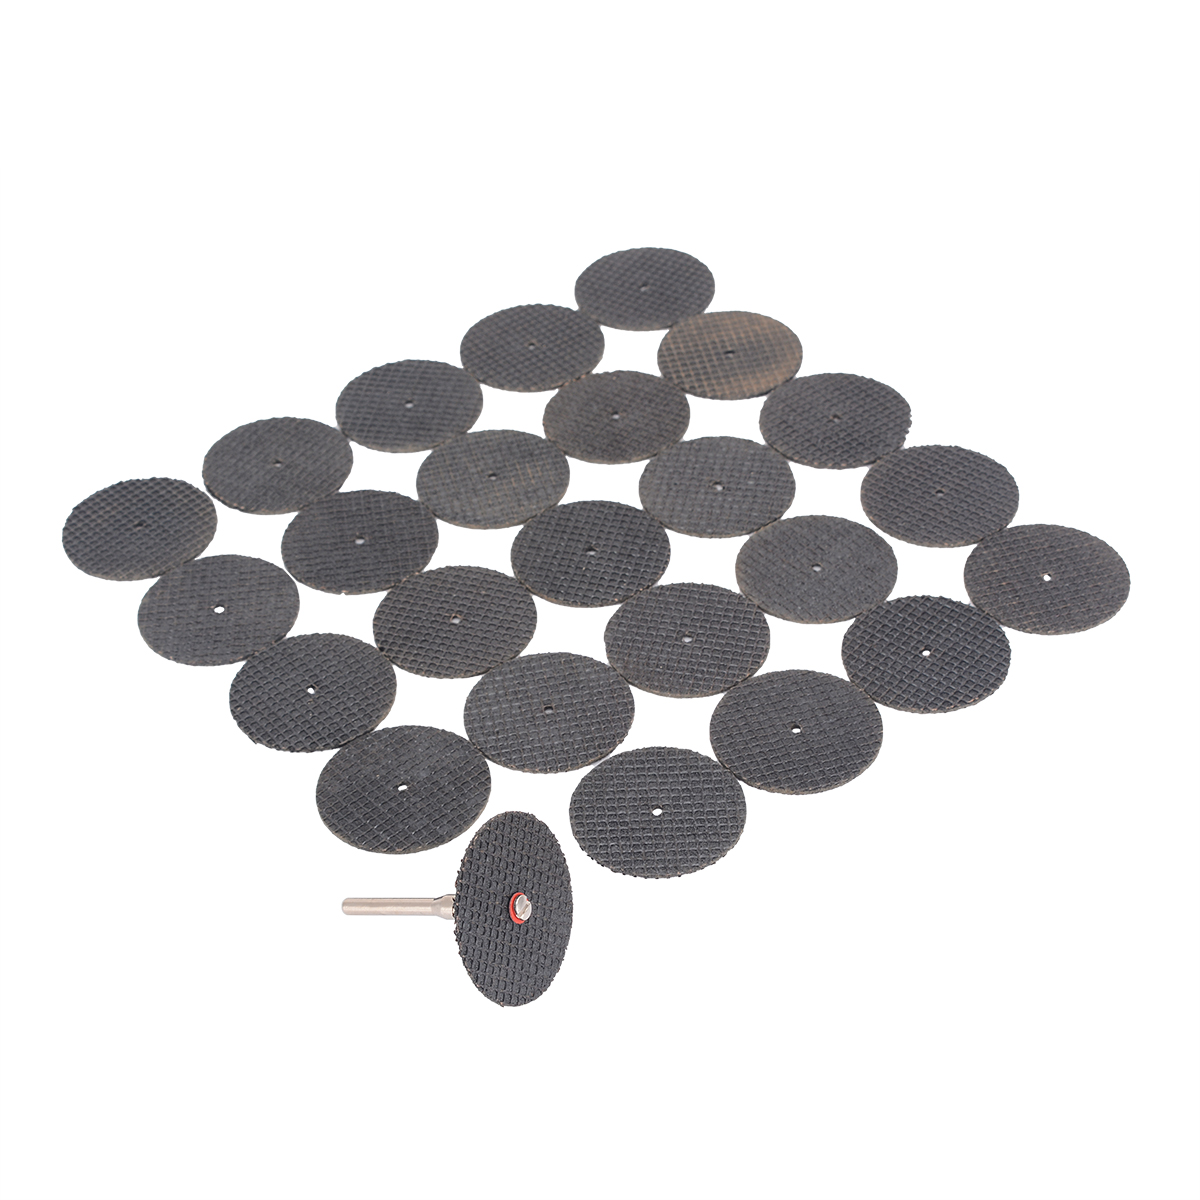 25pcs 32mm Metal Cutting Wheel Cut-off Disc Set With Connection Rod For Grinder Rotary Tools Accessories